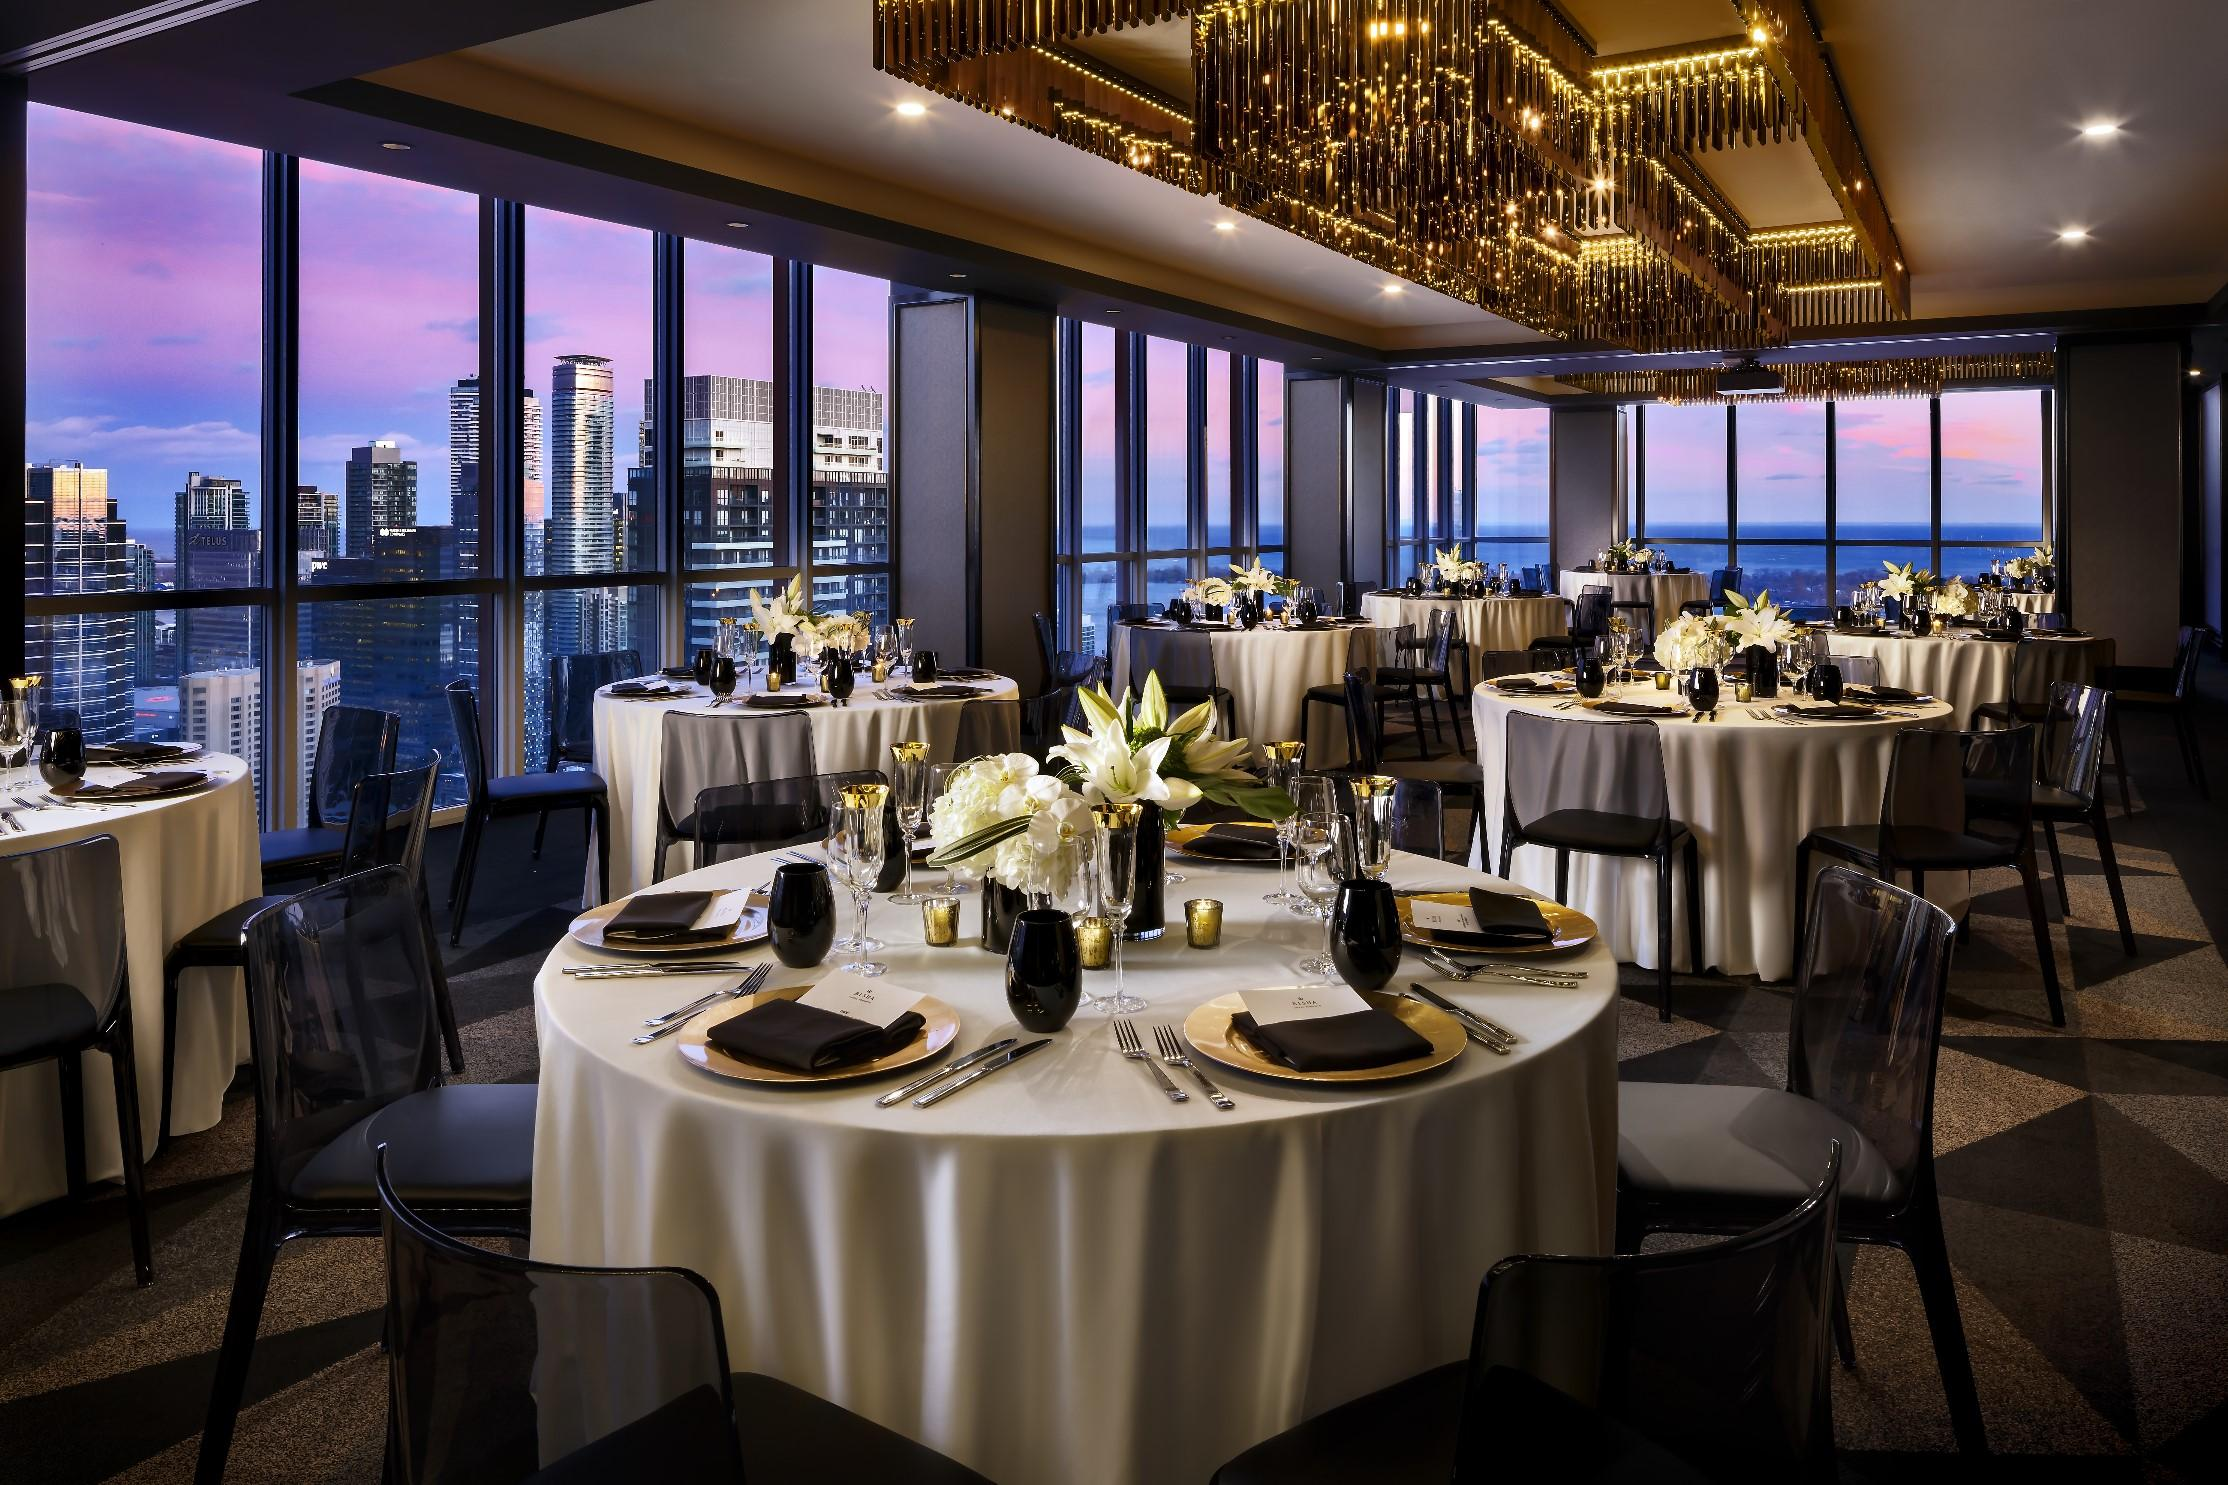 Bisha_Sky Suite_Wedding Reception Lake, City views